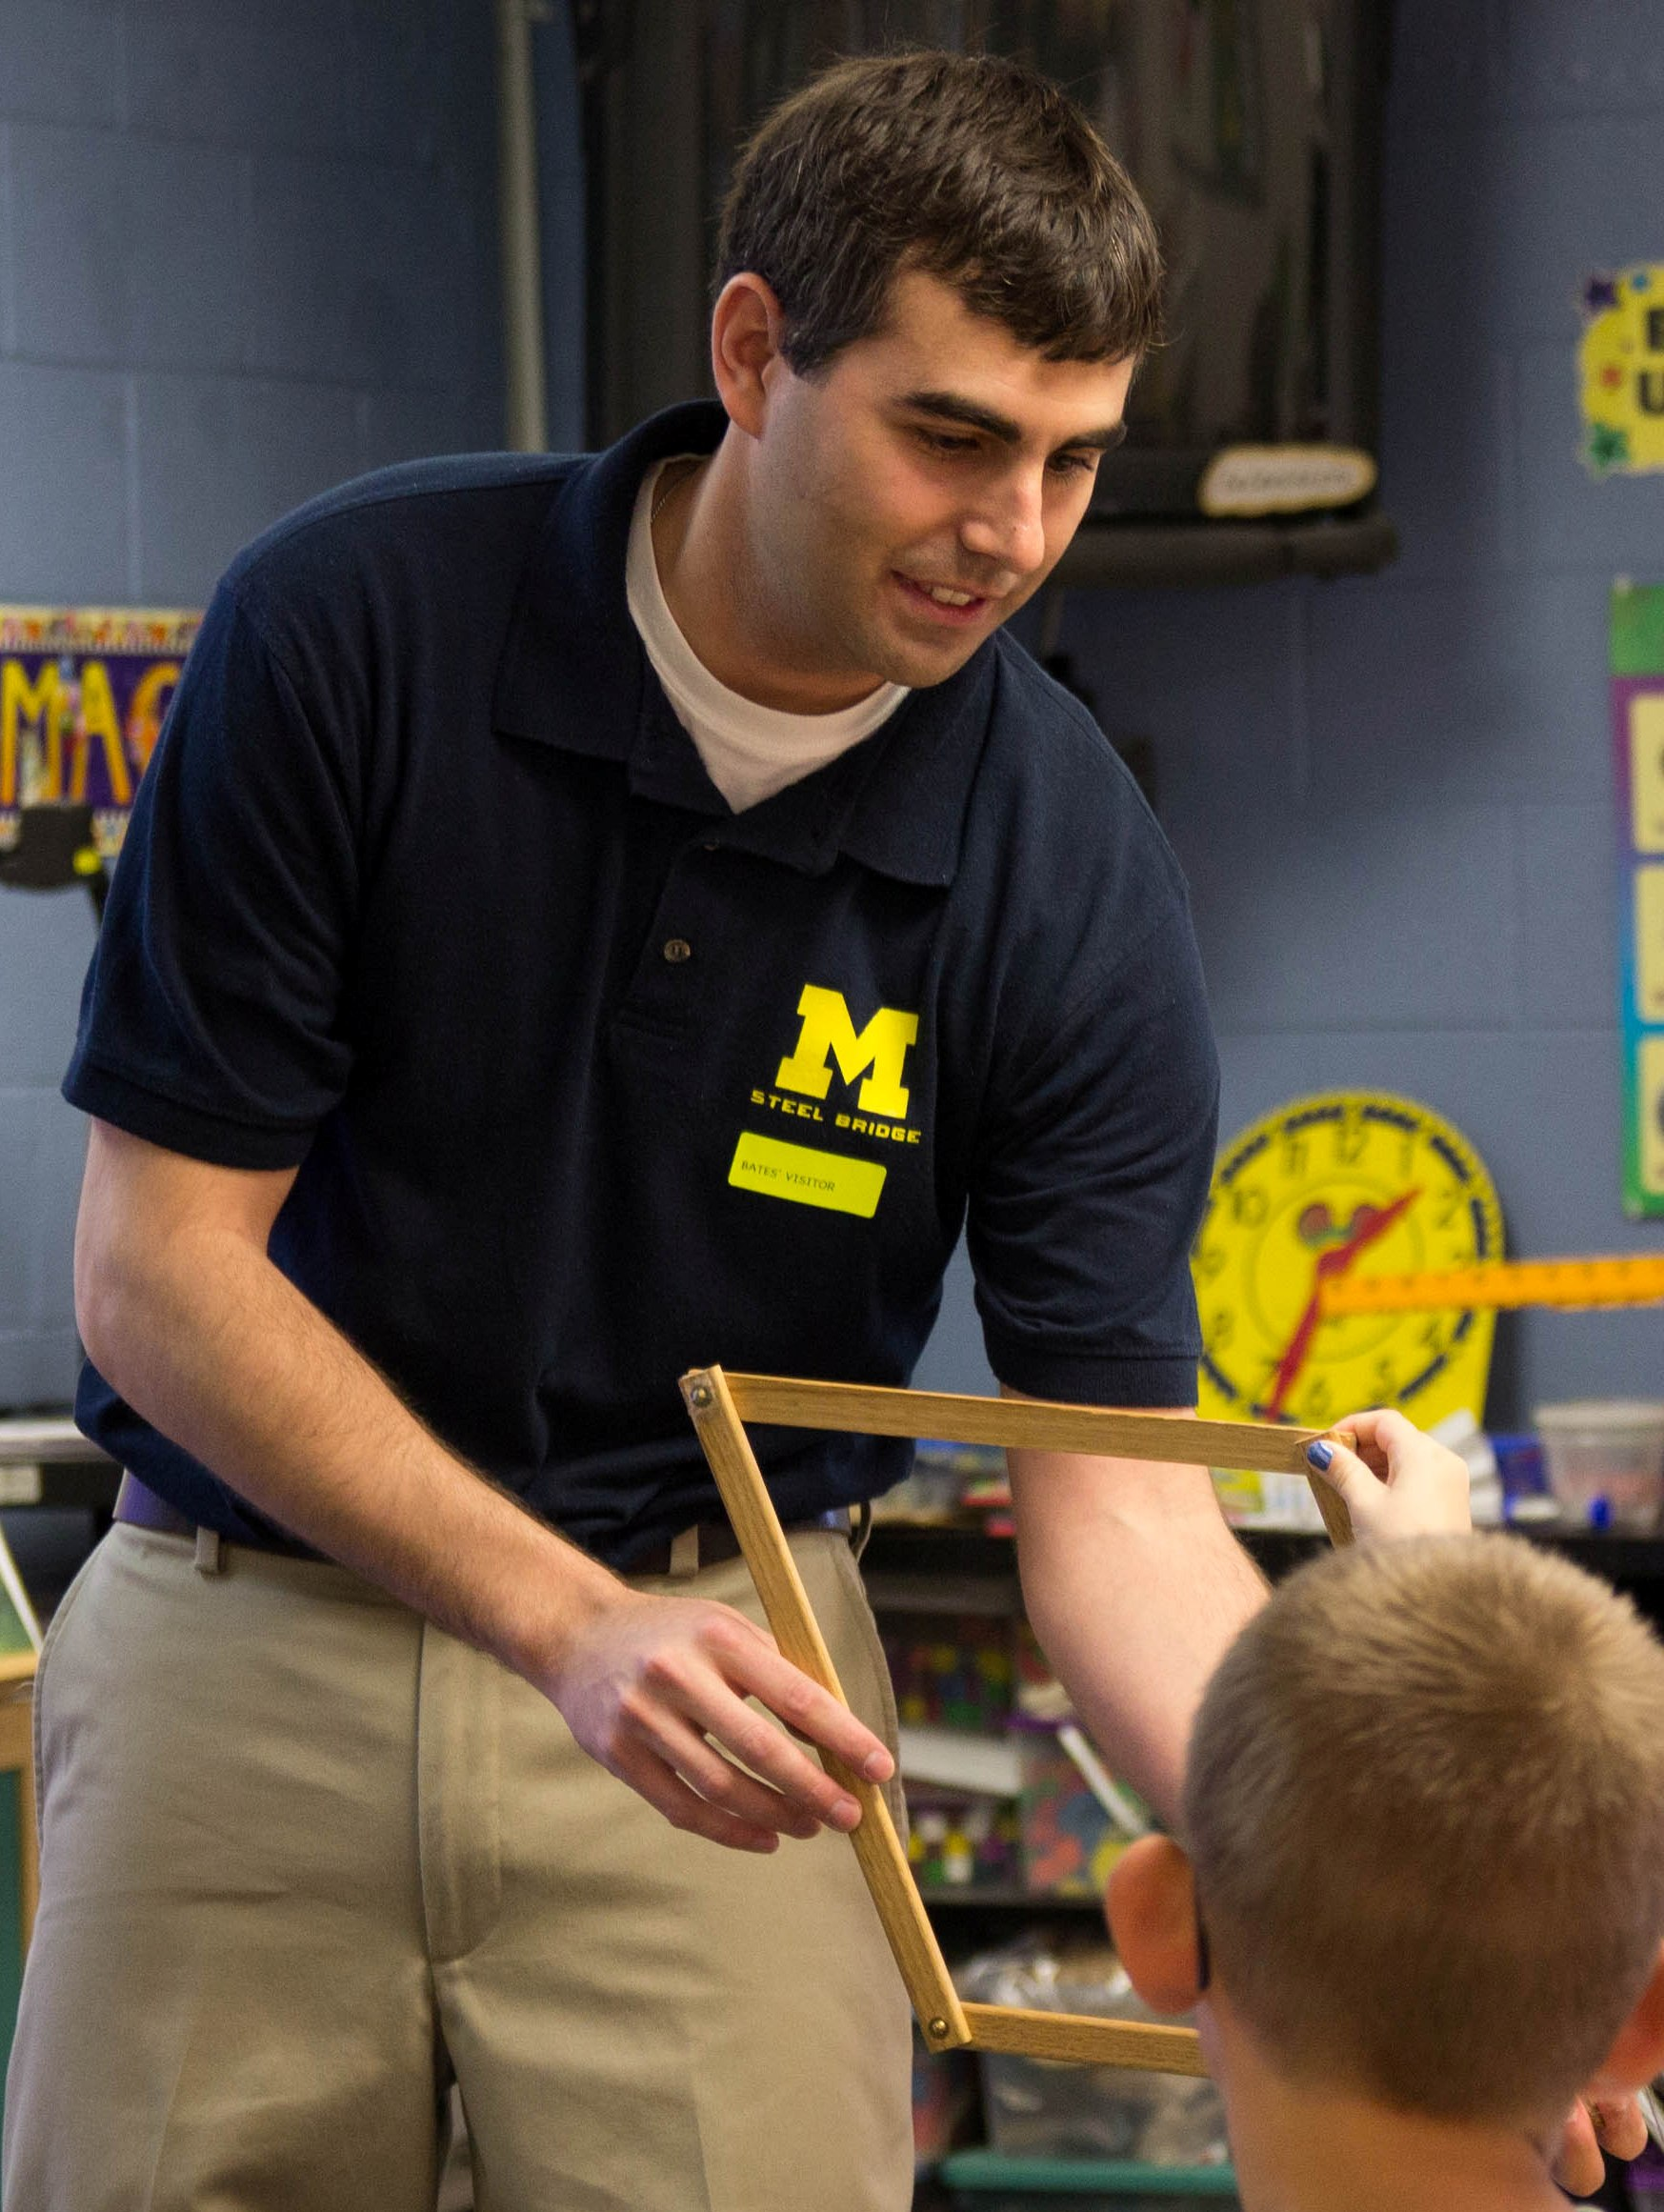 CEE Associate Professor Jason McCormick visits local elementary to teach students about building bridges.